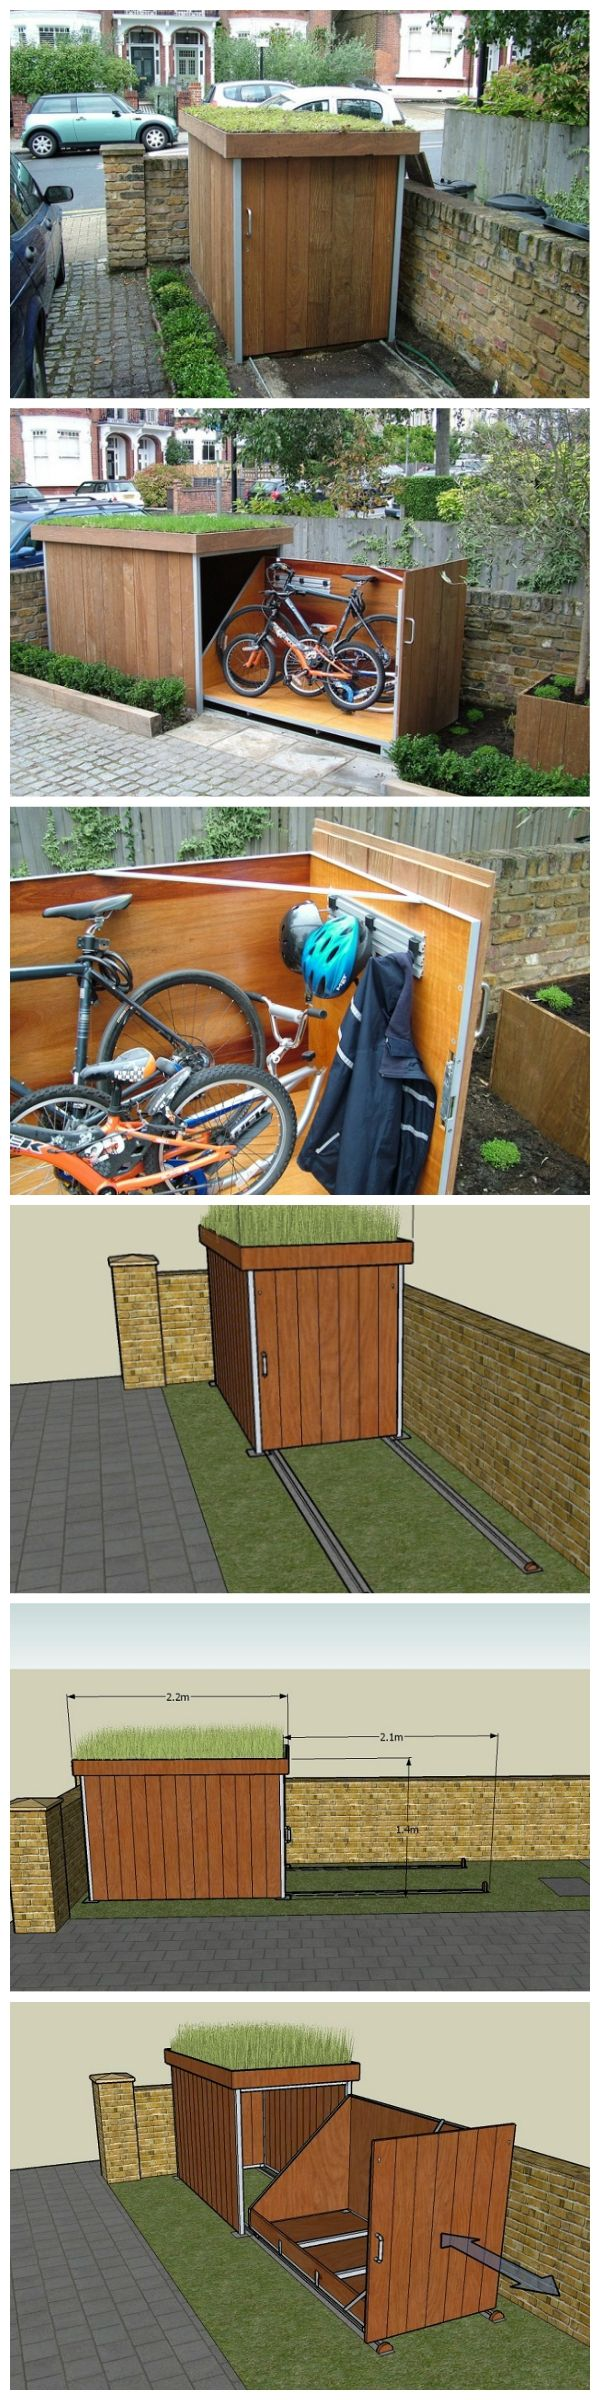 How To Build A Bike Storage Shed                                                                                                                                                                                 More